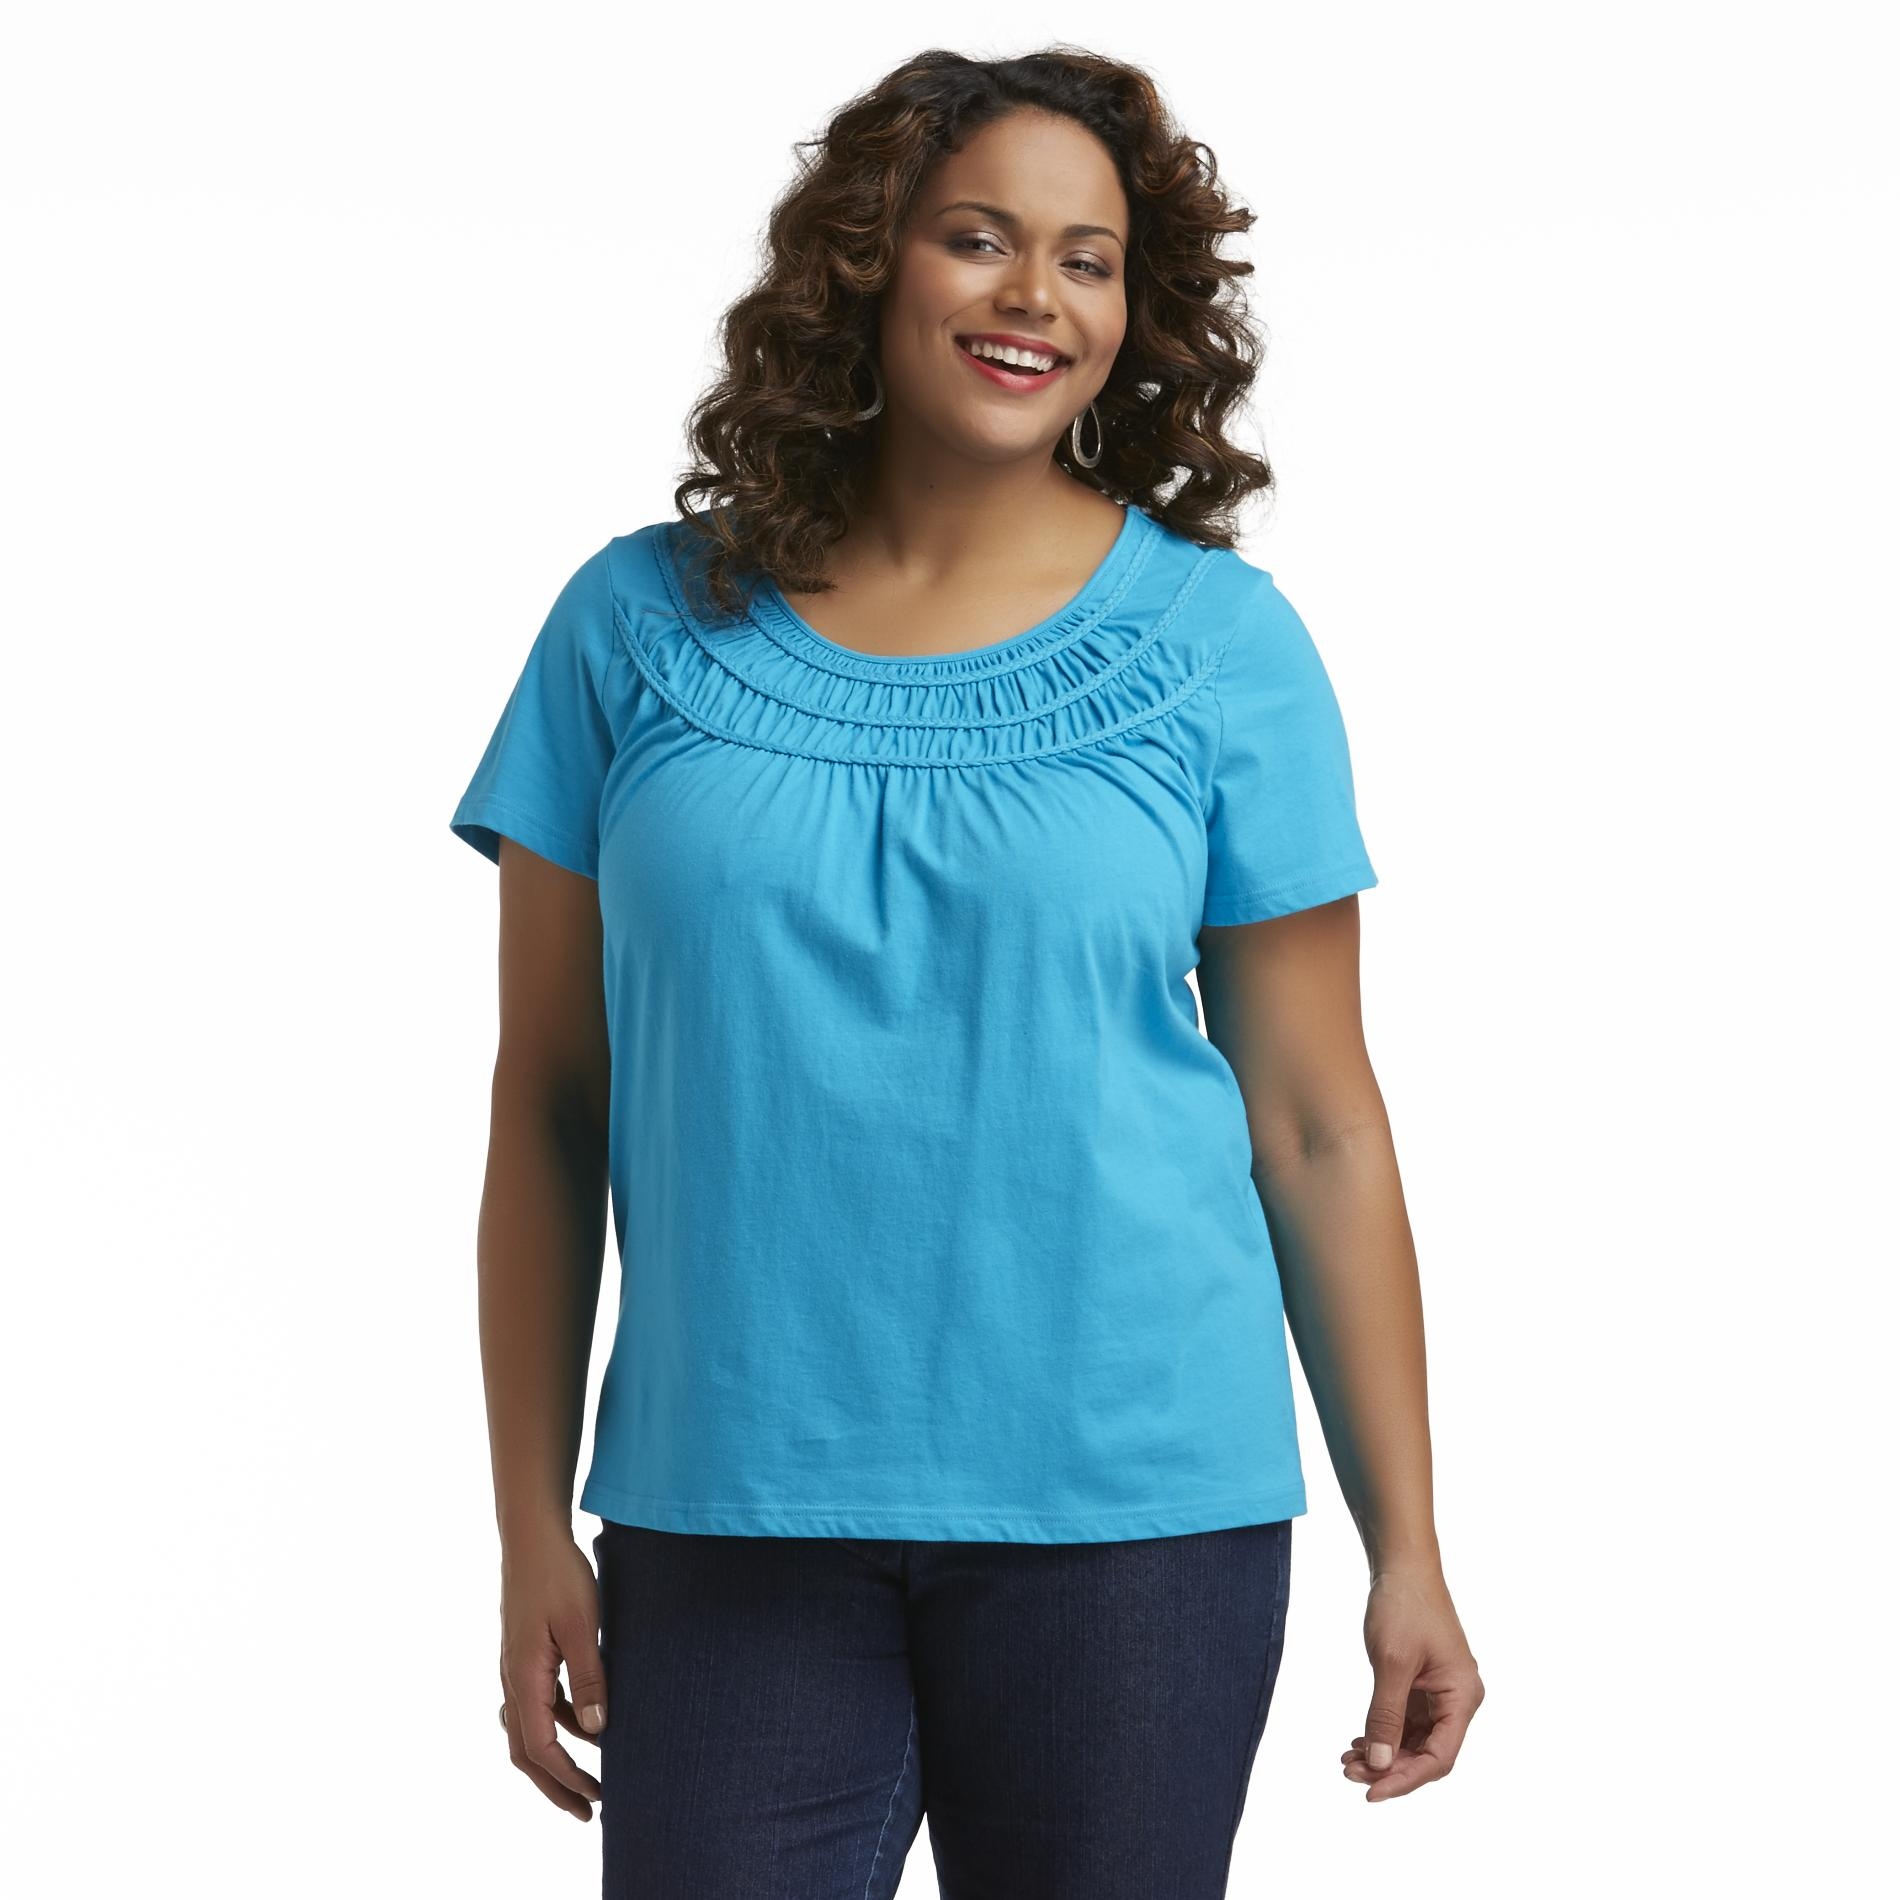 Basic Editions Women's Plus Scoop Neck Top at Kmart.com